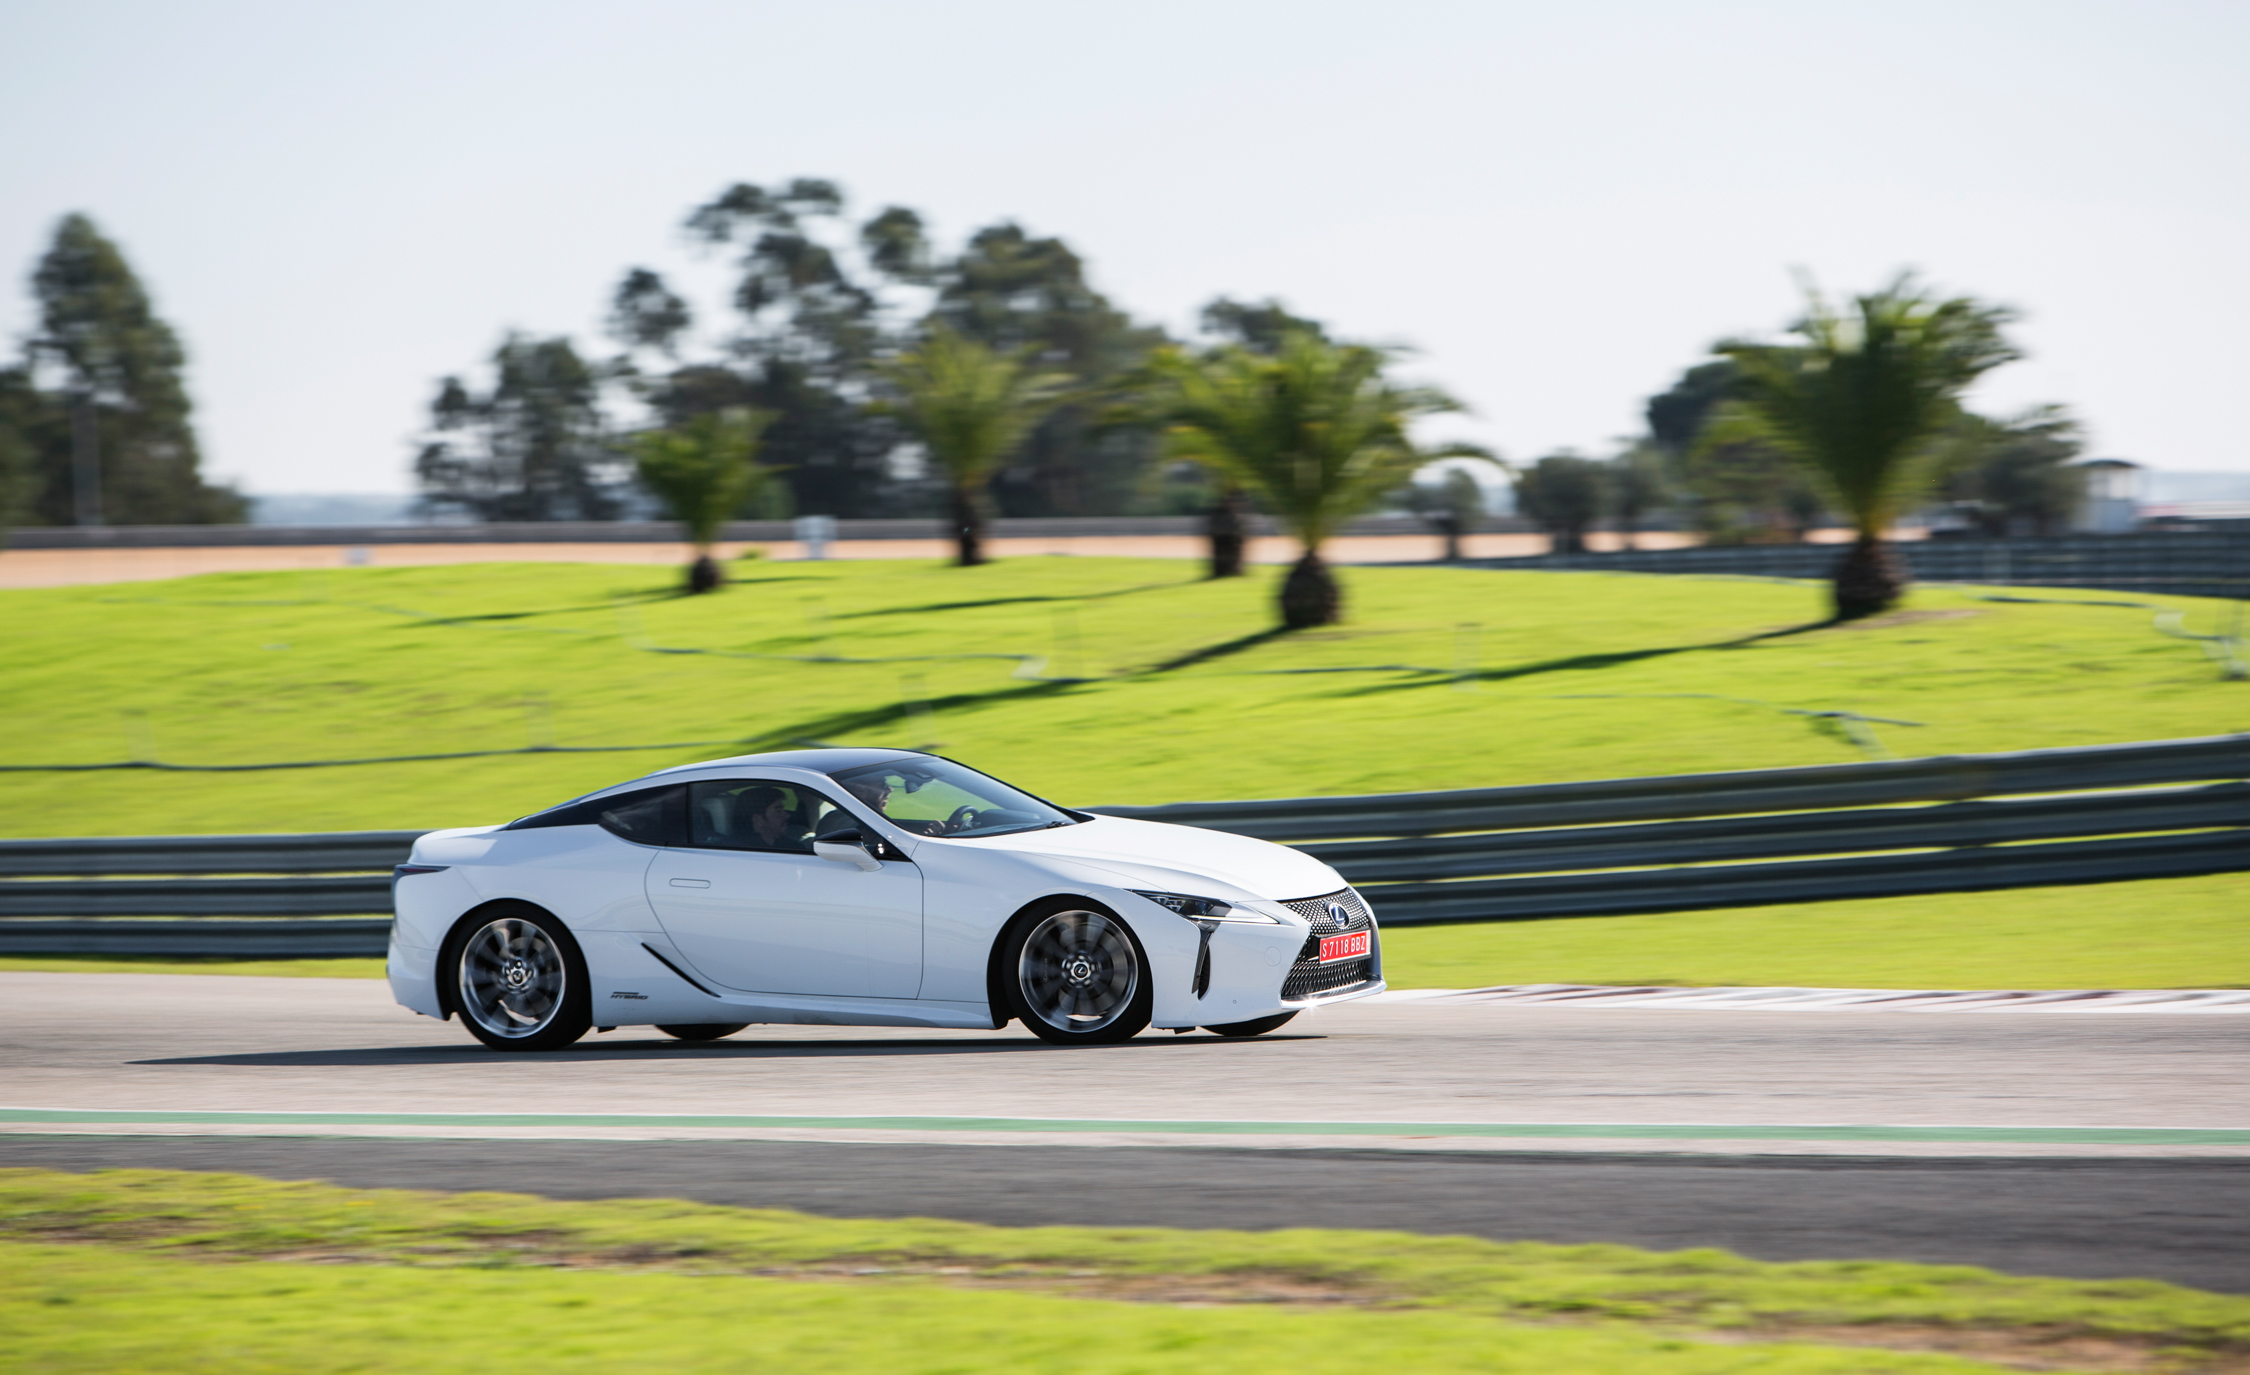 2018 Lexus Lc 500h White Test Drive Side View (Photo 69 of 84)